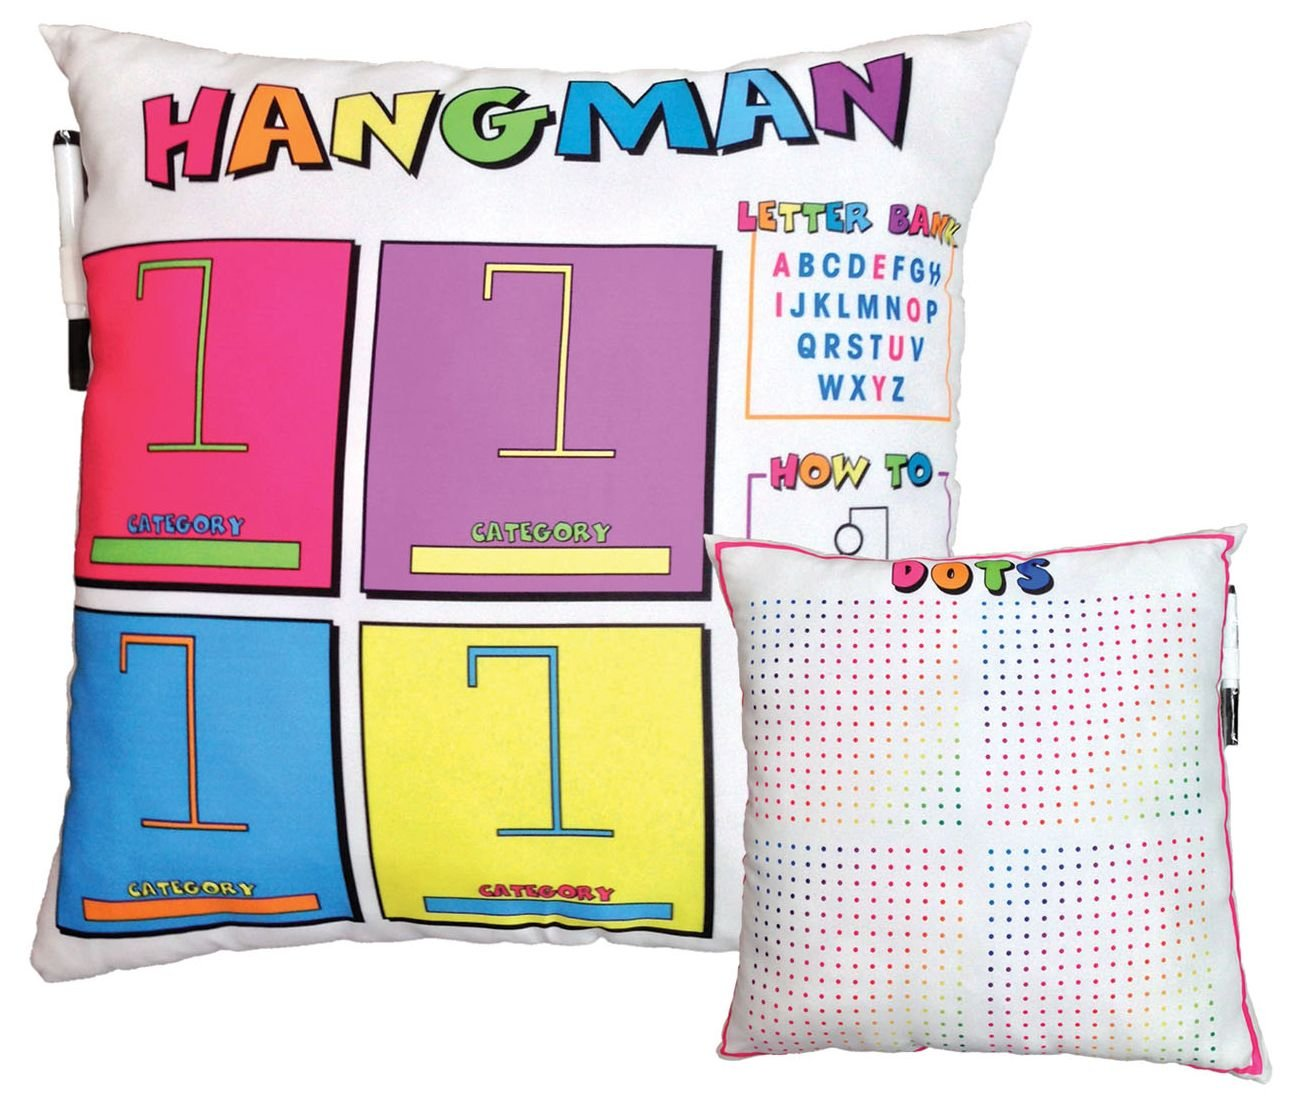 iscream Summer Camp Games Hangman and Dots 16'' Activity Game Pillow for Camp, Troops and More!